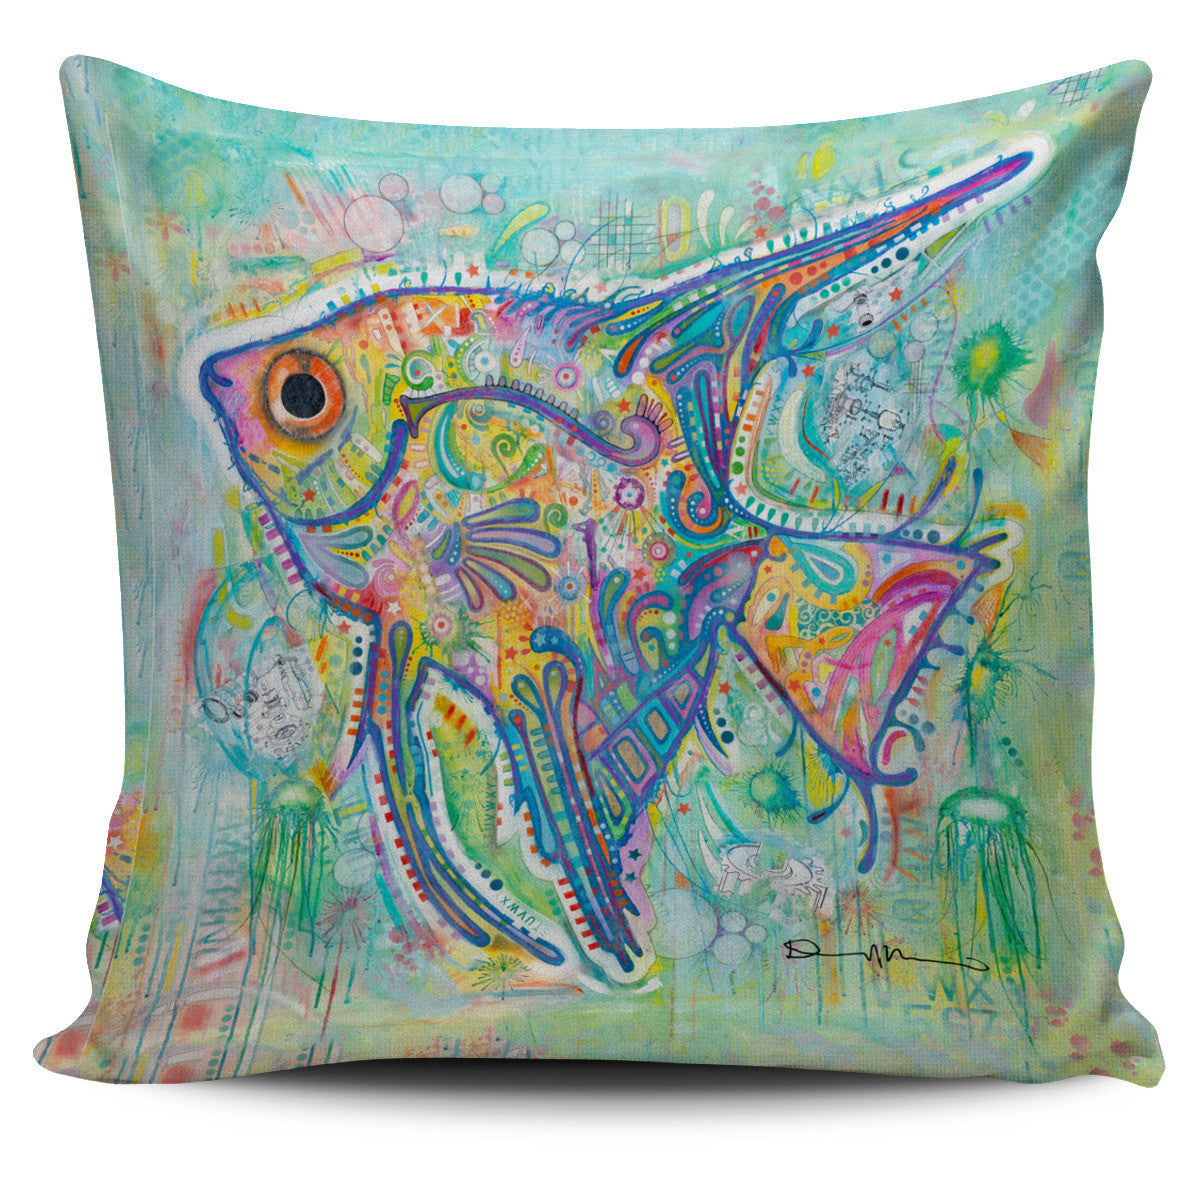 Oceana Series Pillow Covers